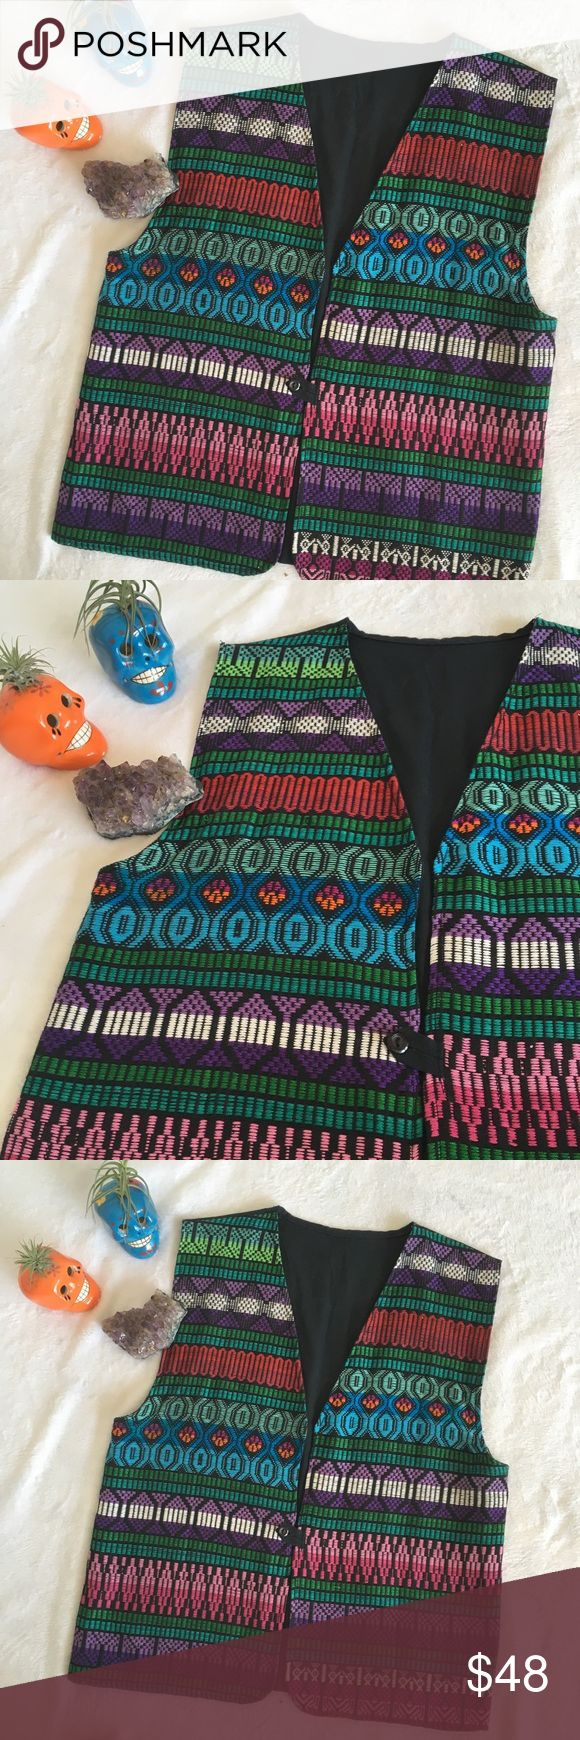 """Guatemalan embroidered festival tribal vest Awesome colorful vintage Guatemalan embroidered men's vest. Beautiful geometric pattern embroidered front with single button closure and plain black back fabric. Perfect for upcoming festival season, Burning Man, Coachella etc. One of a kind item! Excellent condition, no flaws. Chest measures 20"""" lying flat. Men's Medium. Vintage Jackets & Coats Vests"""